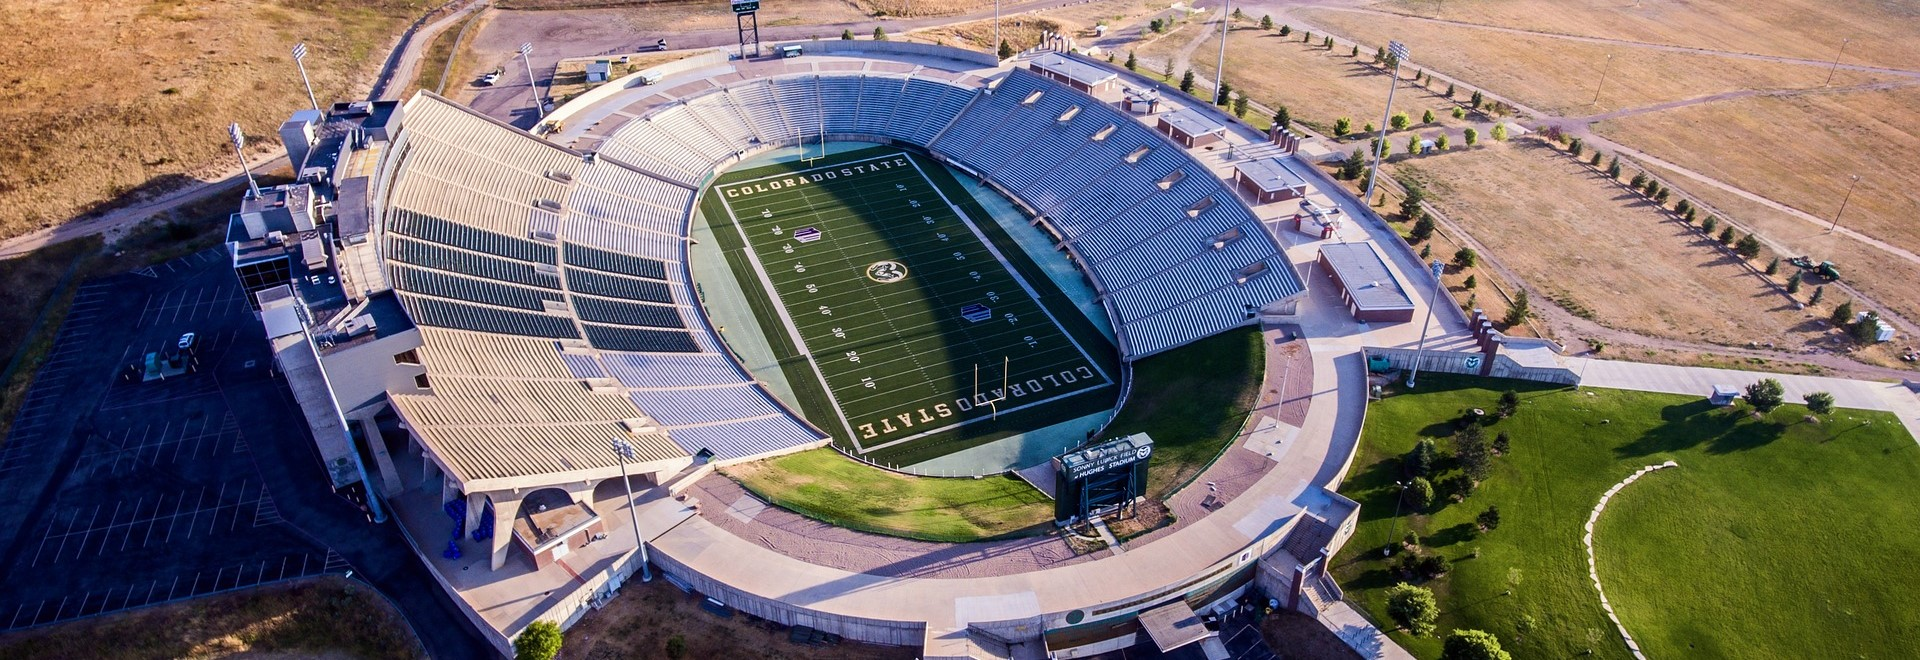 Football Stadium in Fort Collins, Colorado | Breast Cancer Car Donations